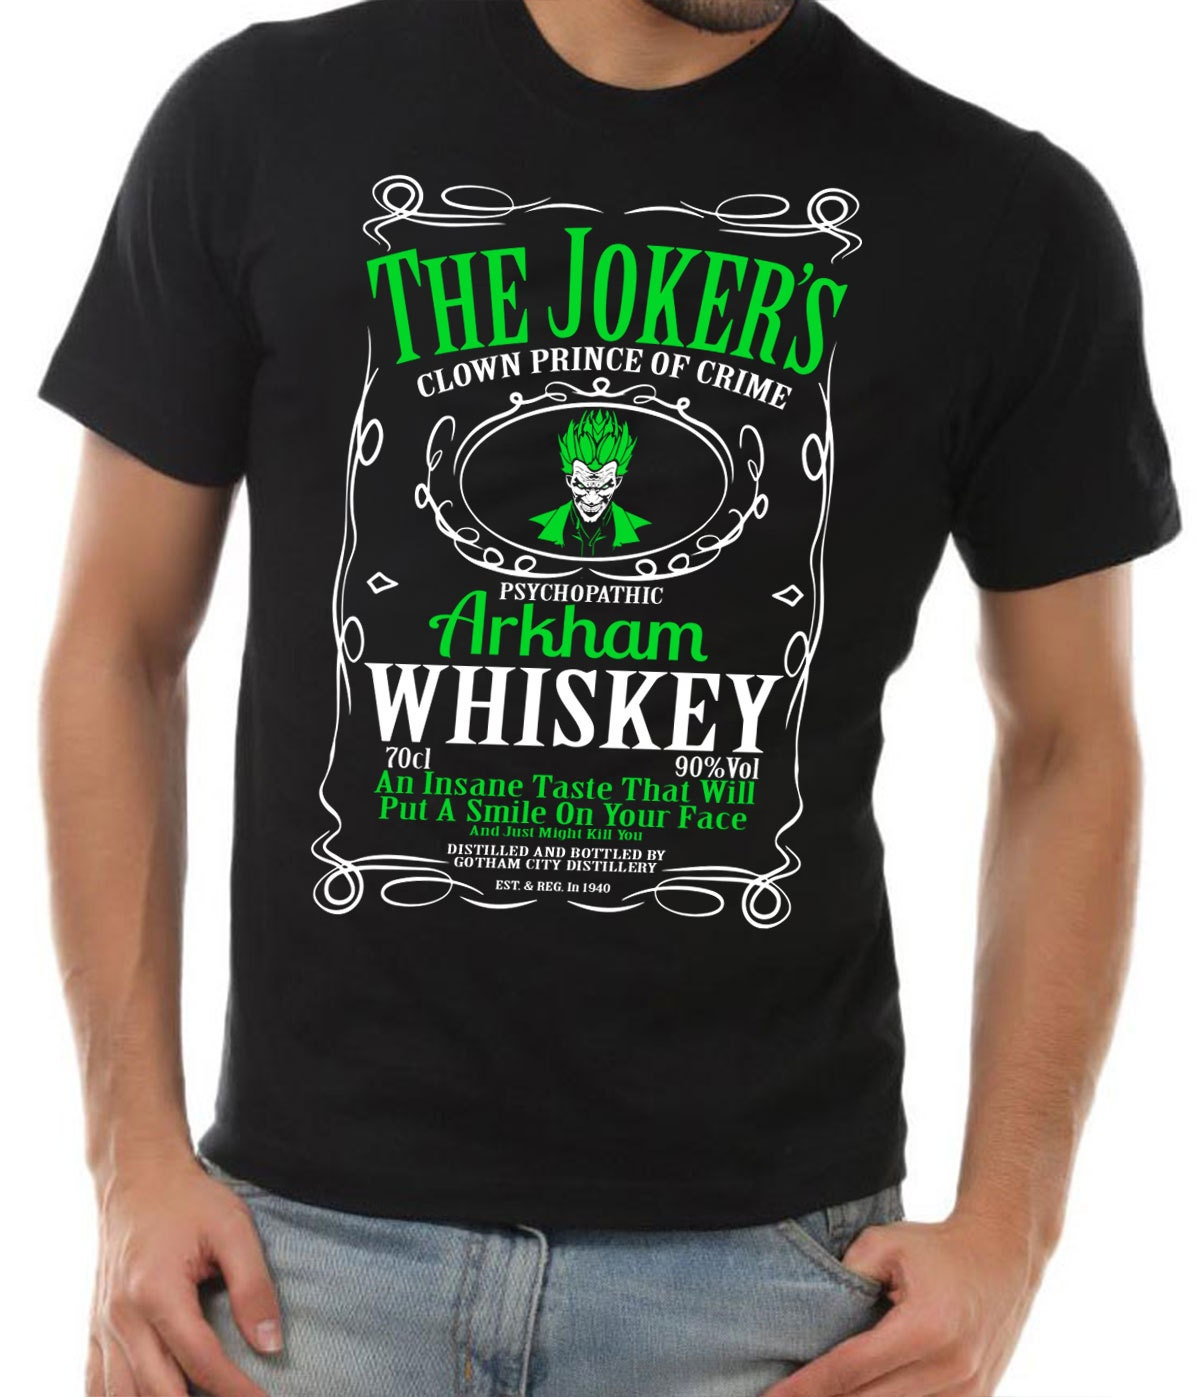 The Joker T-shirt Arkham Whiskey Black Unisex Shirt Suicide